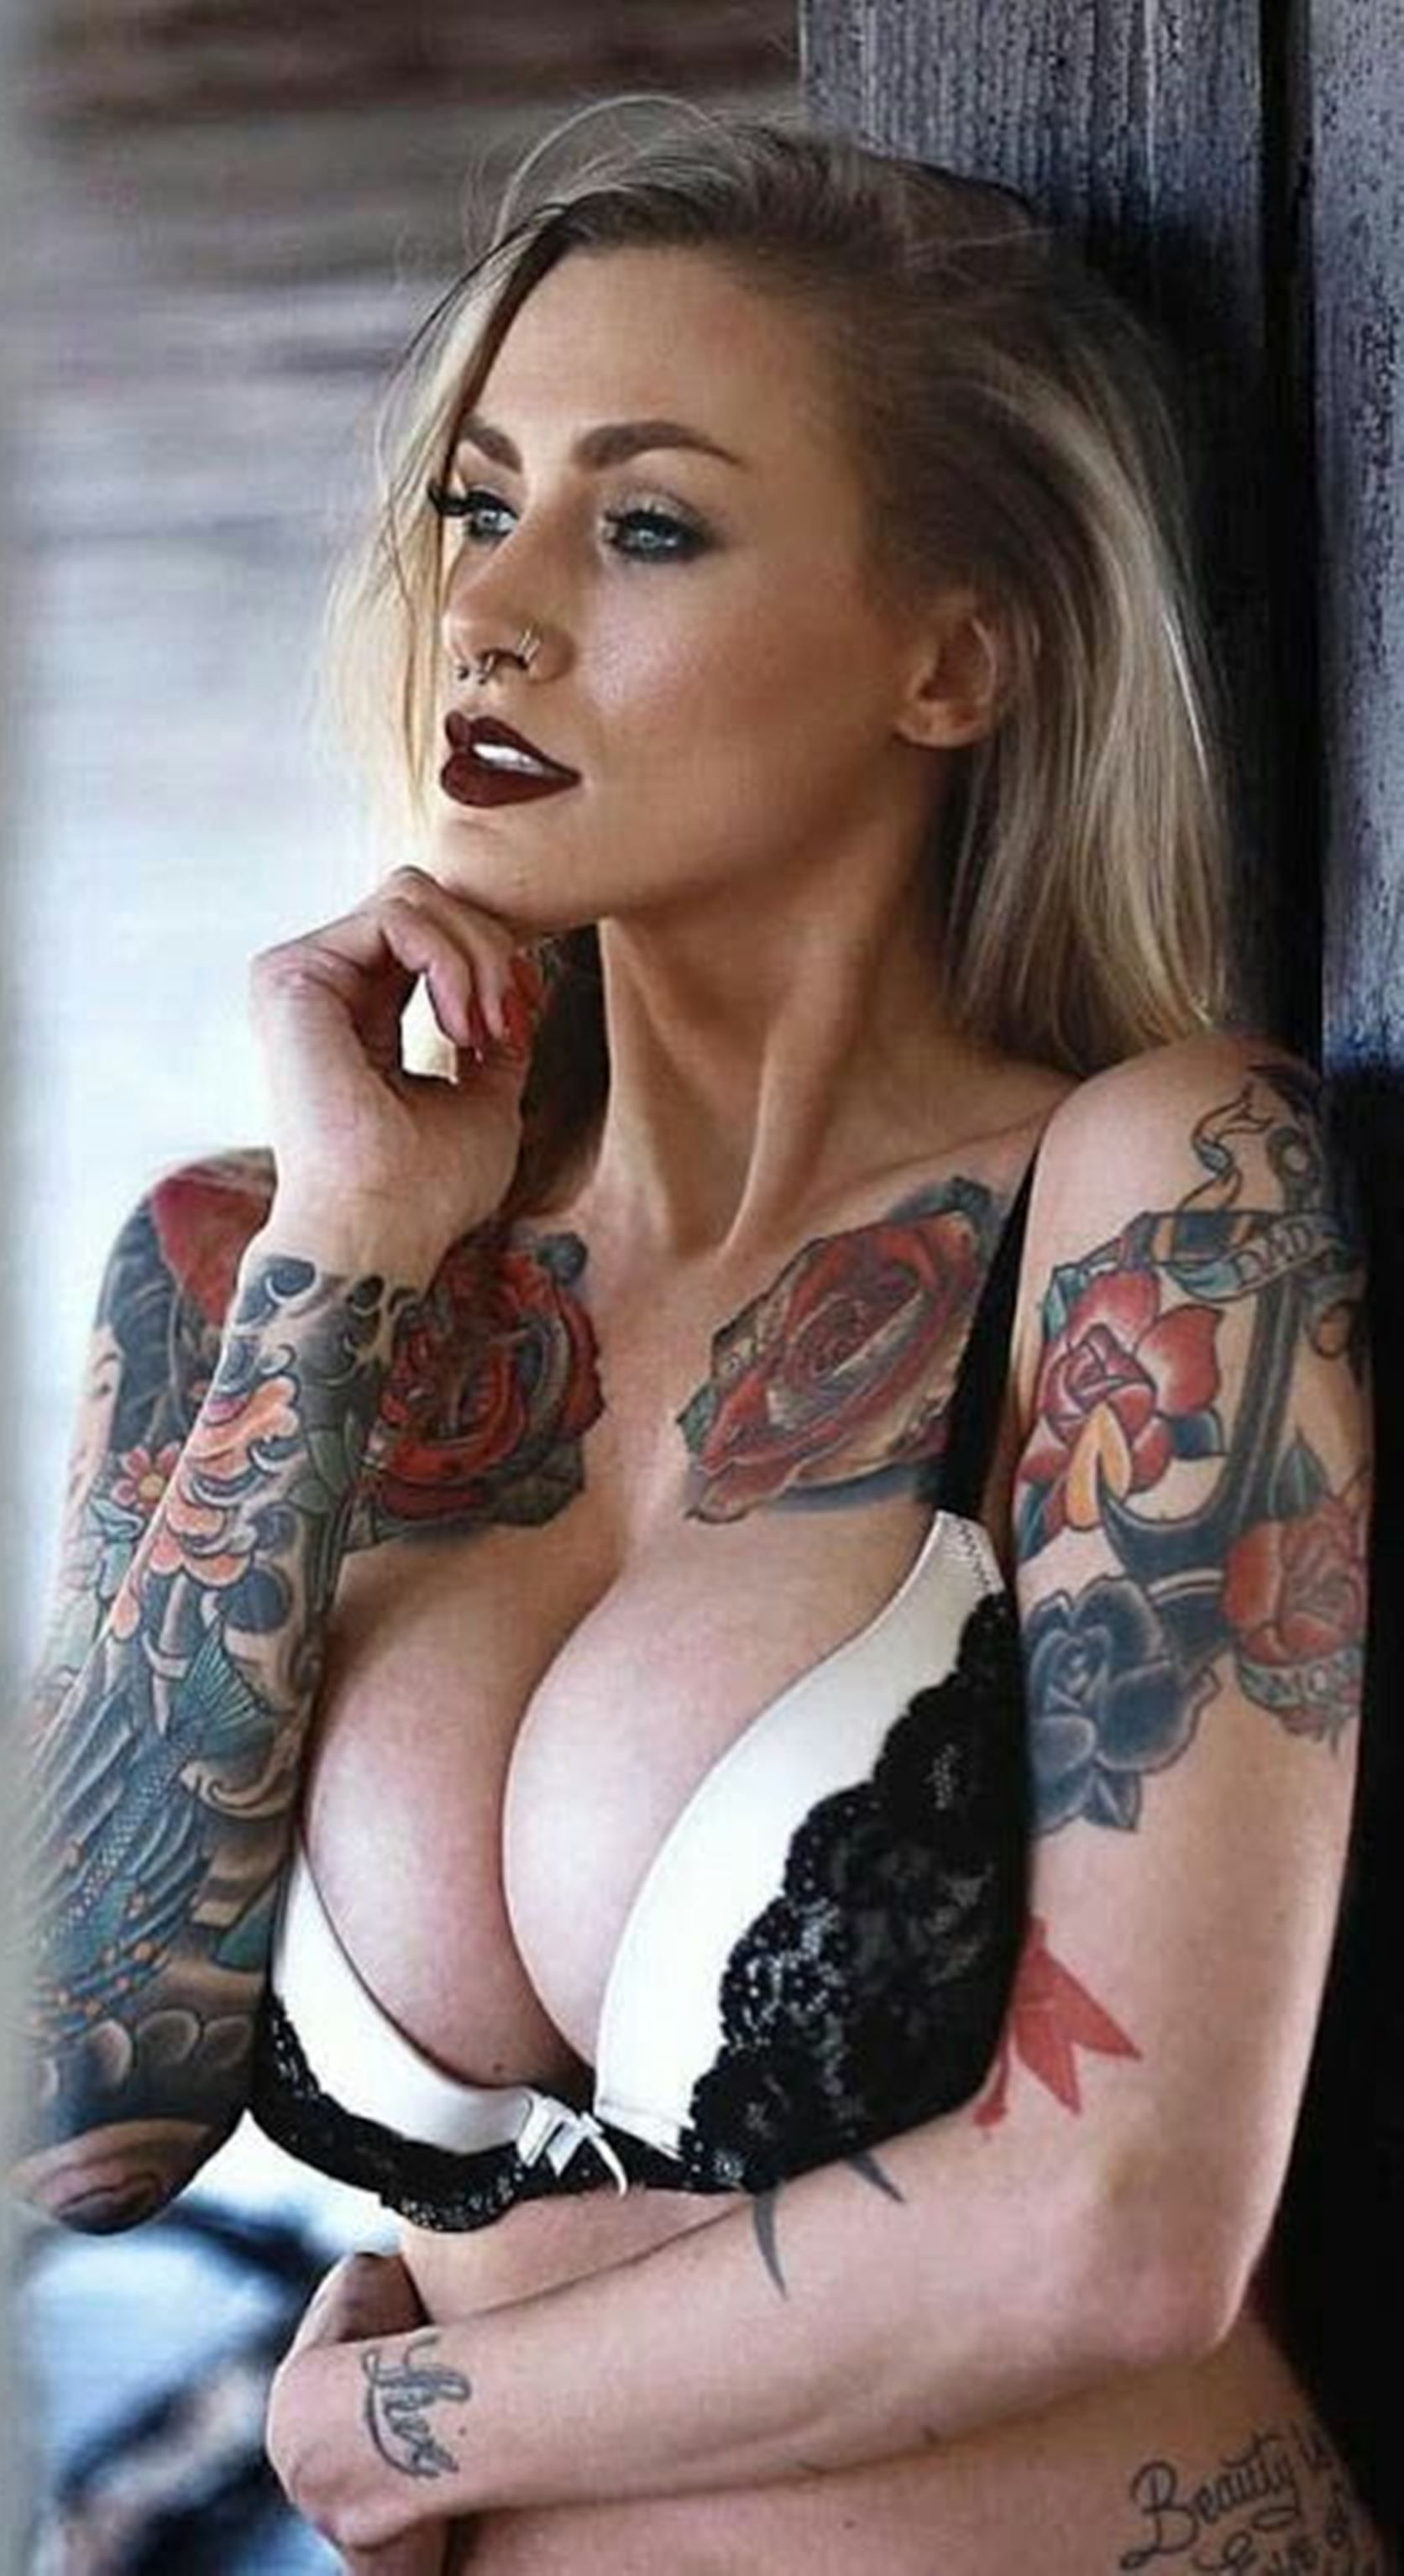 tattoos-for-girls-on-tits-father-and-son-fuck-mom